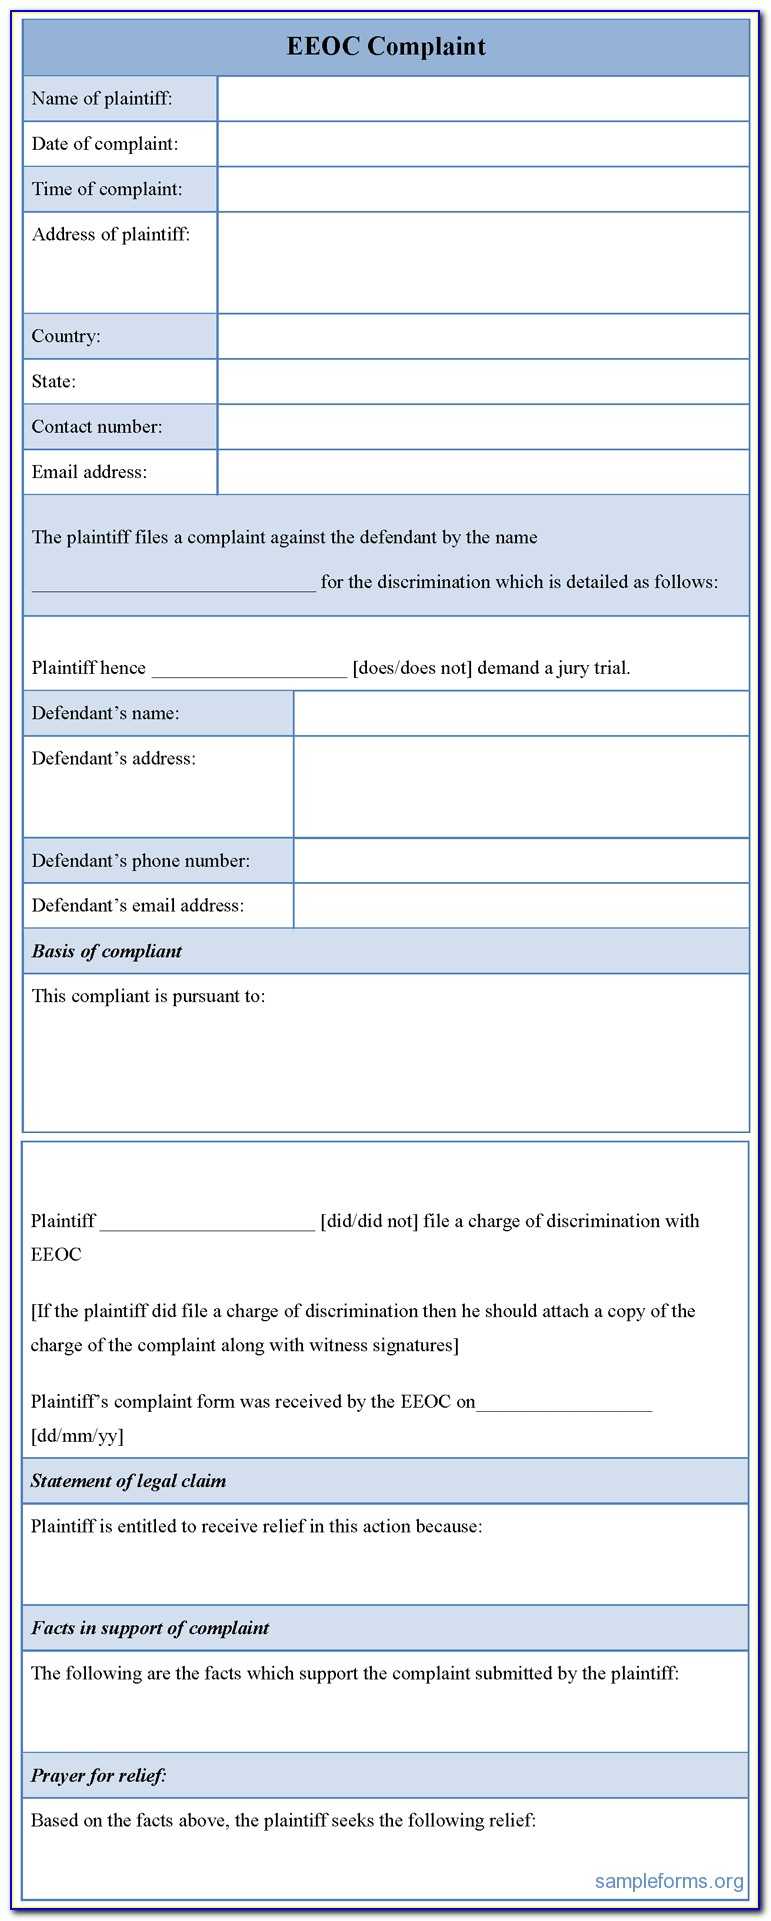 Eeoc Complaint Form Download